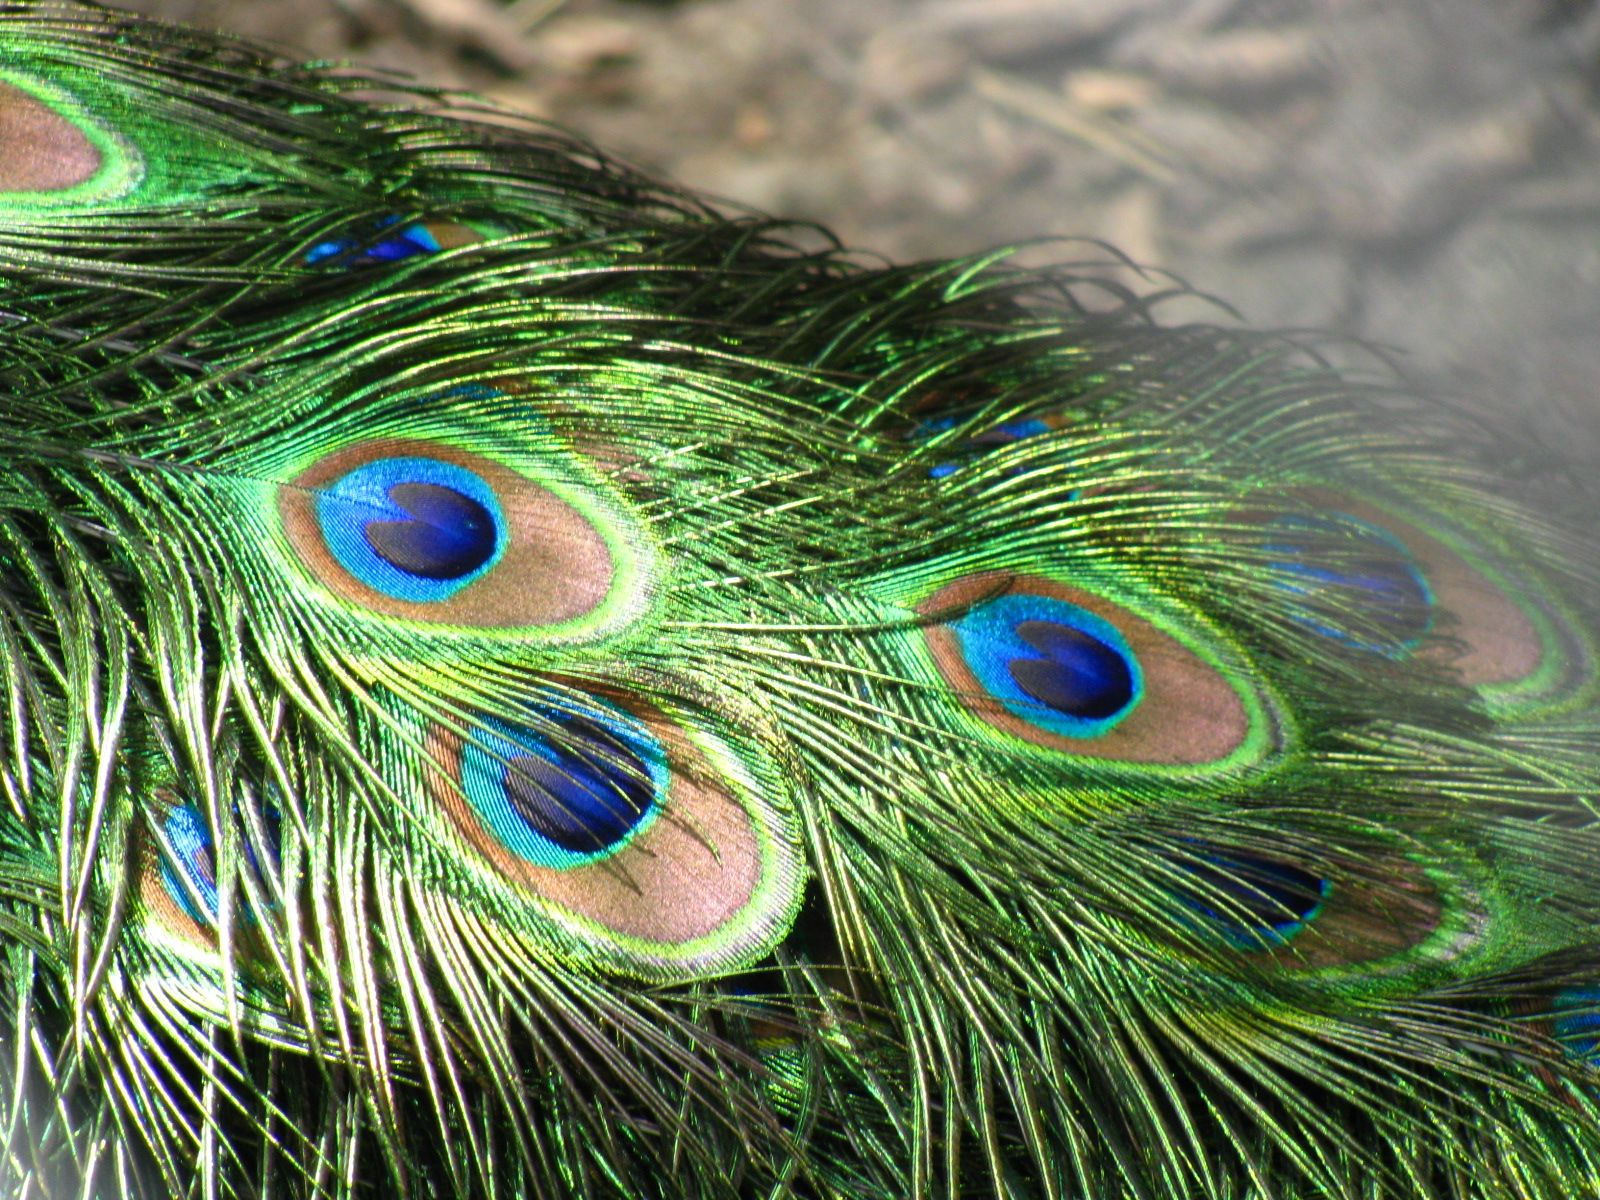 Peacock feather fabric shower curtain quot teal peacock feather quot green - Usa Seller All Natural Genuine Peacock Feathers 10 12 Inches Long W Large Eyes Wholesale By Elegantxboutique Usd